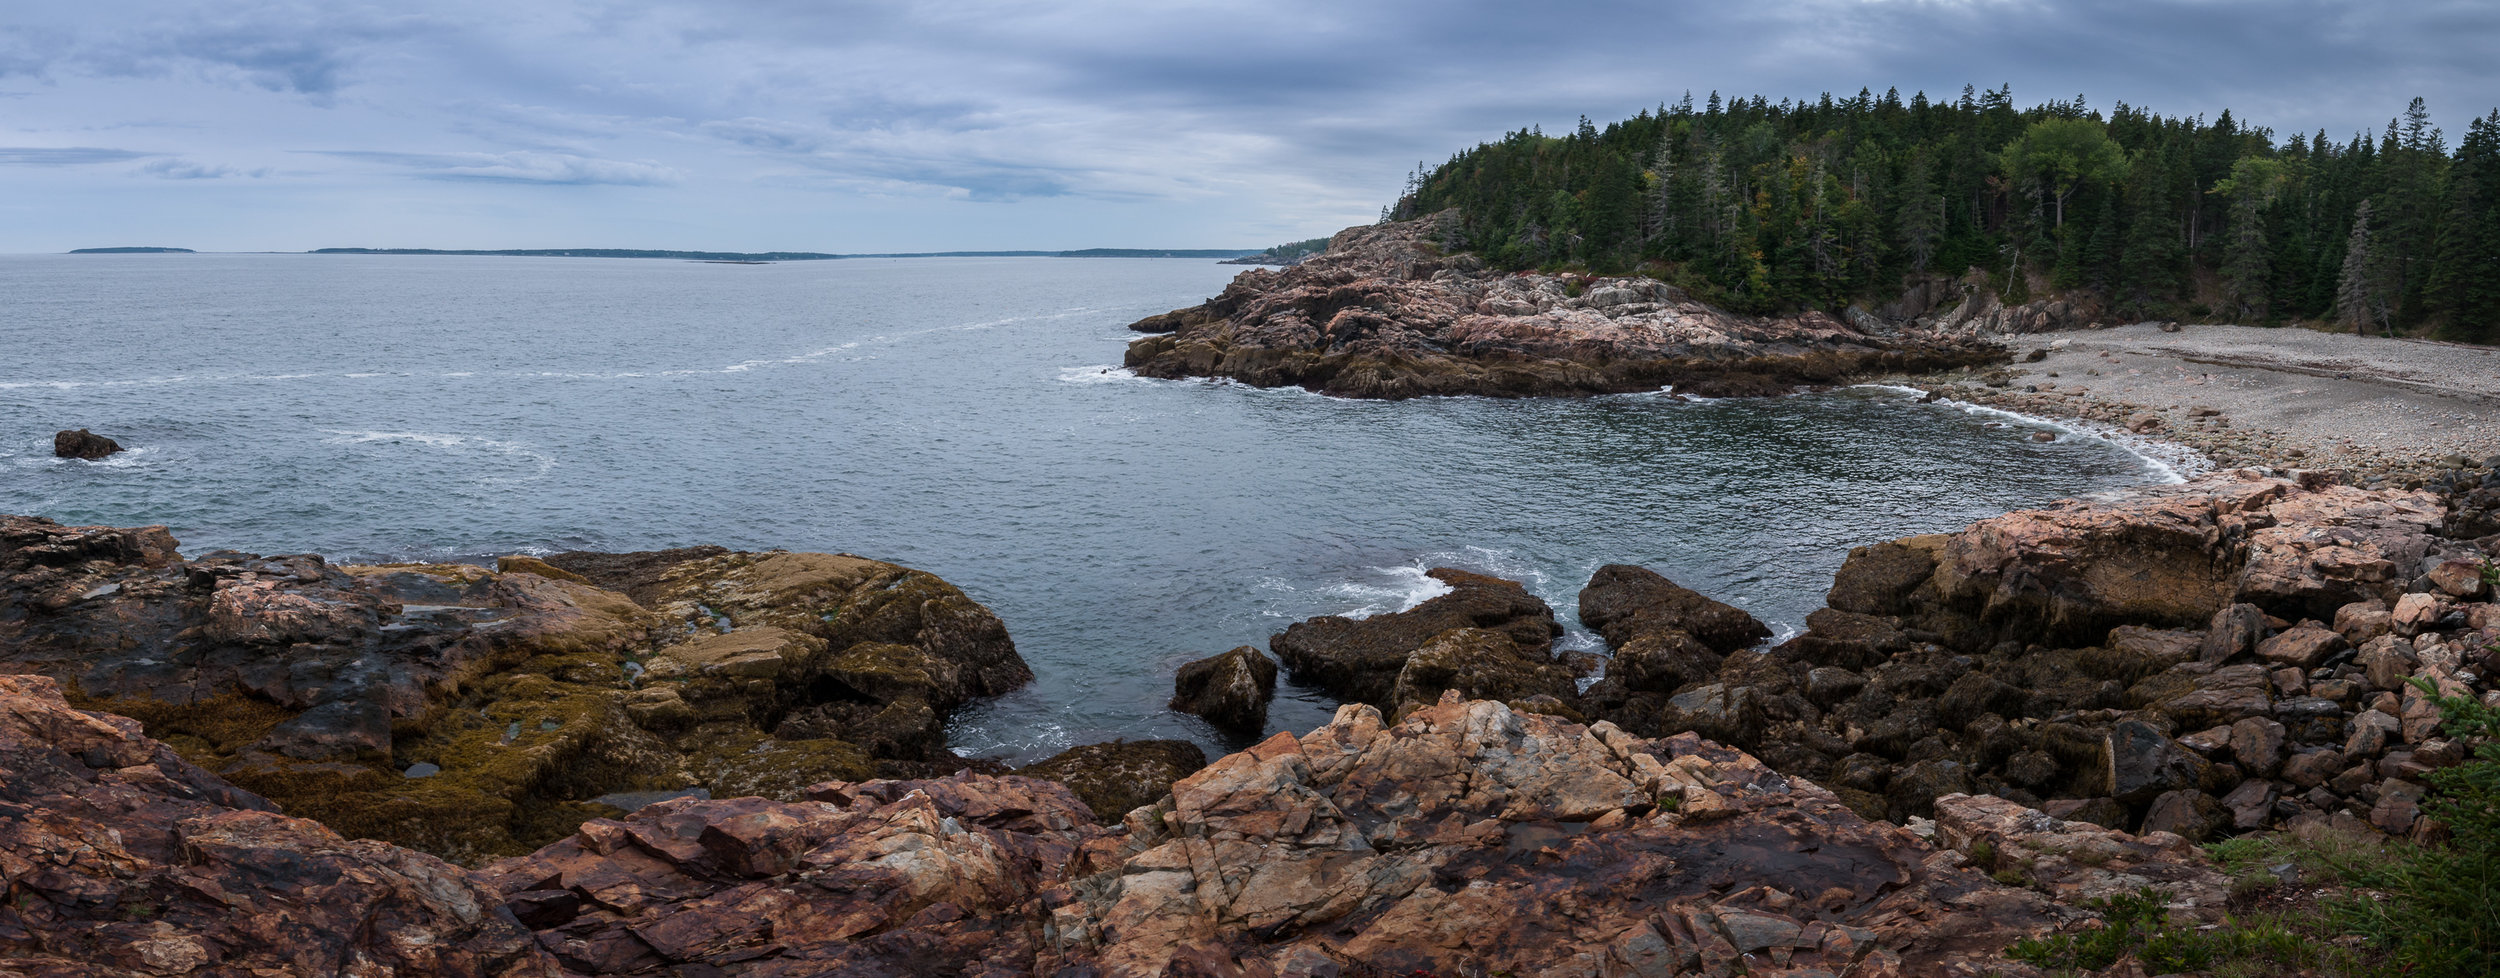 Panorama of inlet and rocky beach in Acadia National Park, Maine